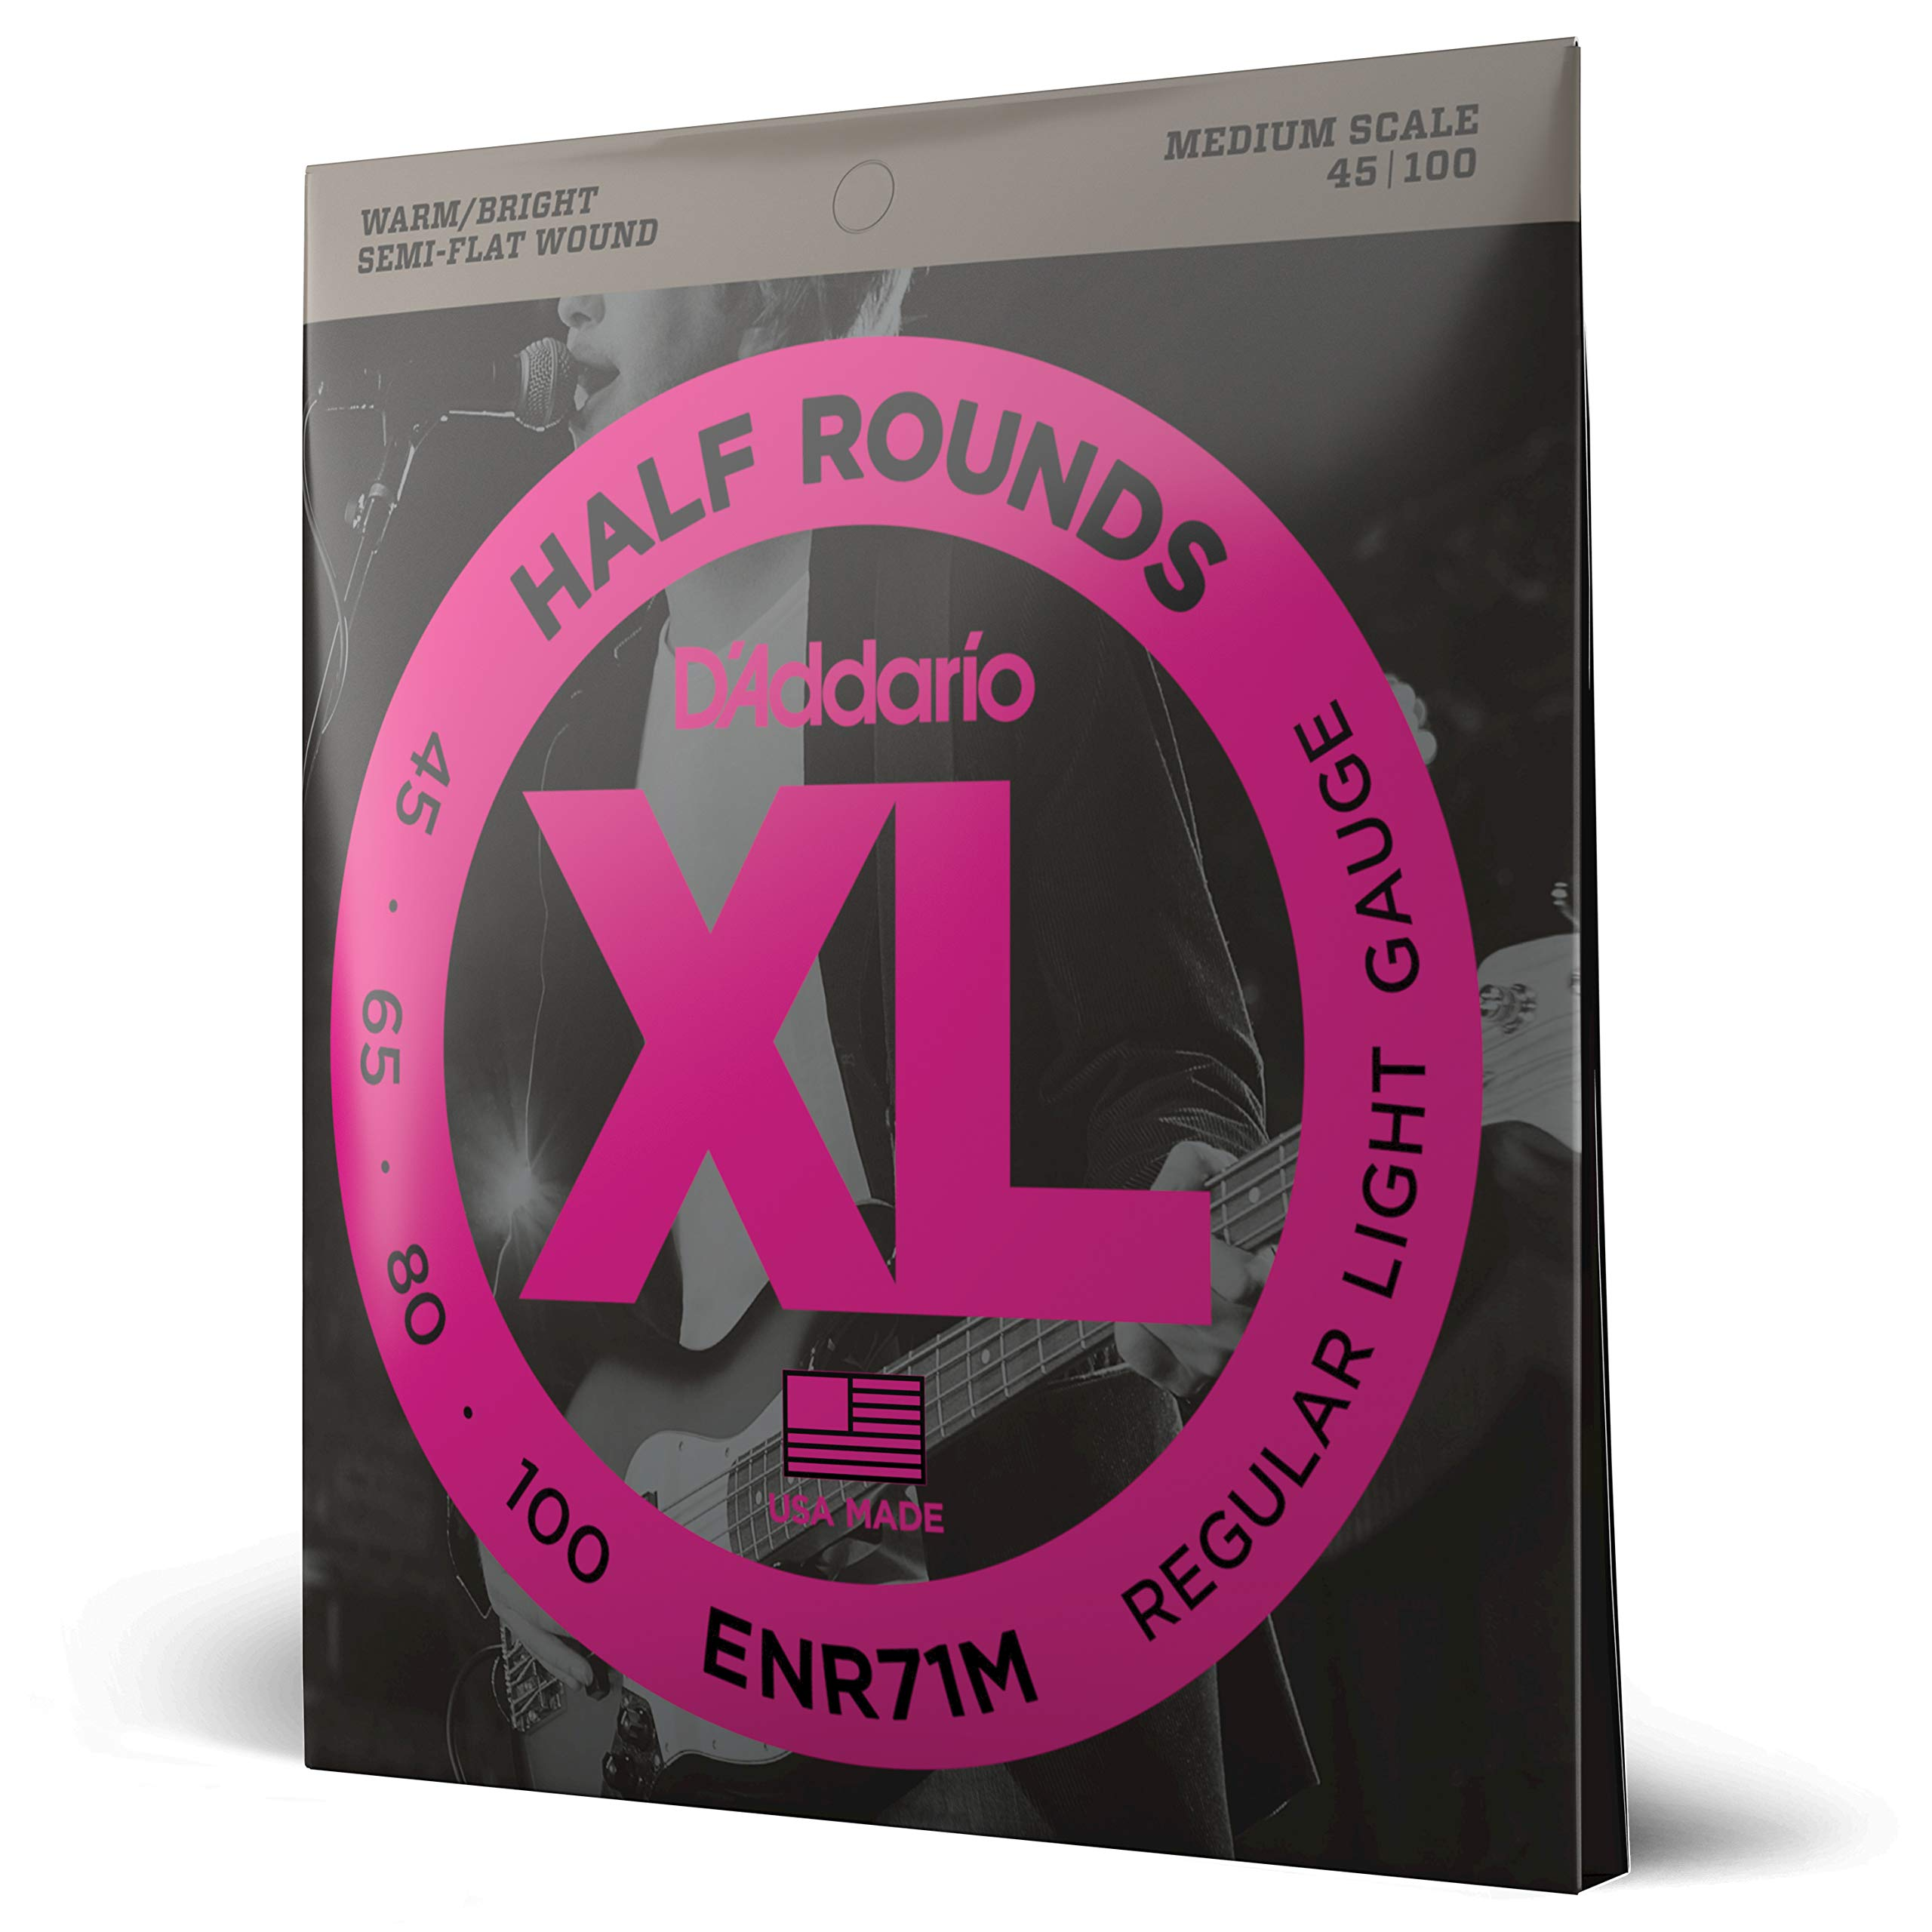 D'Addario ENR71M Half Round Bass Guitar Strings, Regular Light, 45-100, Medium Scale